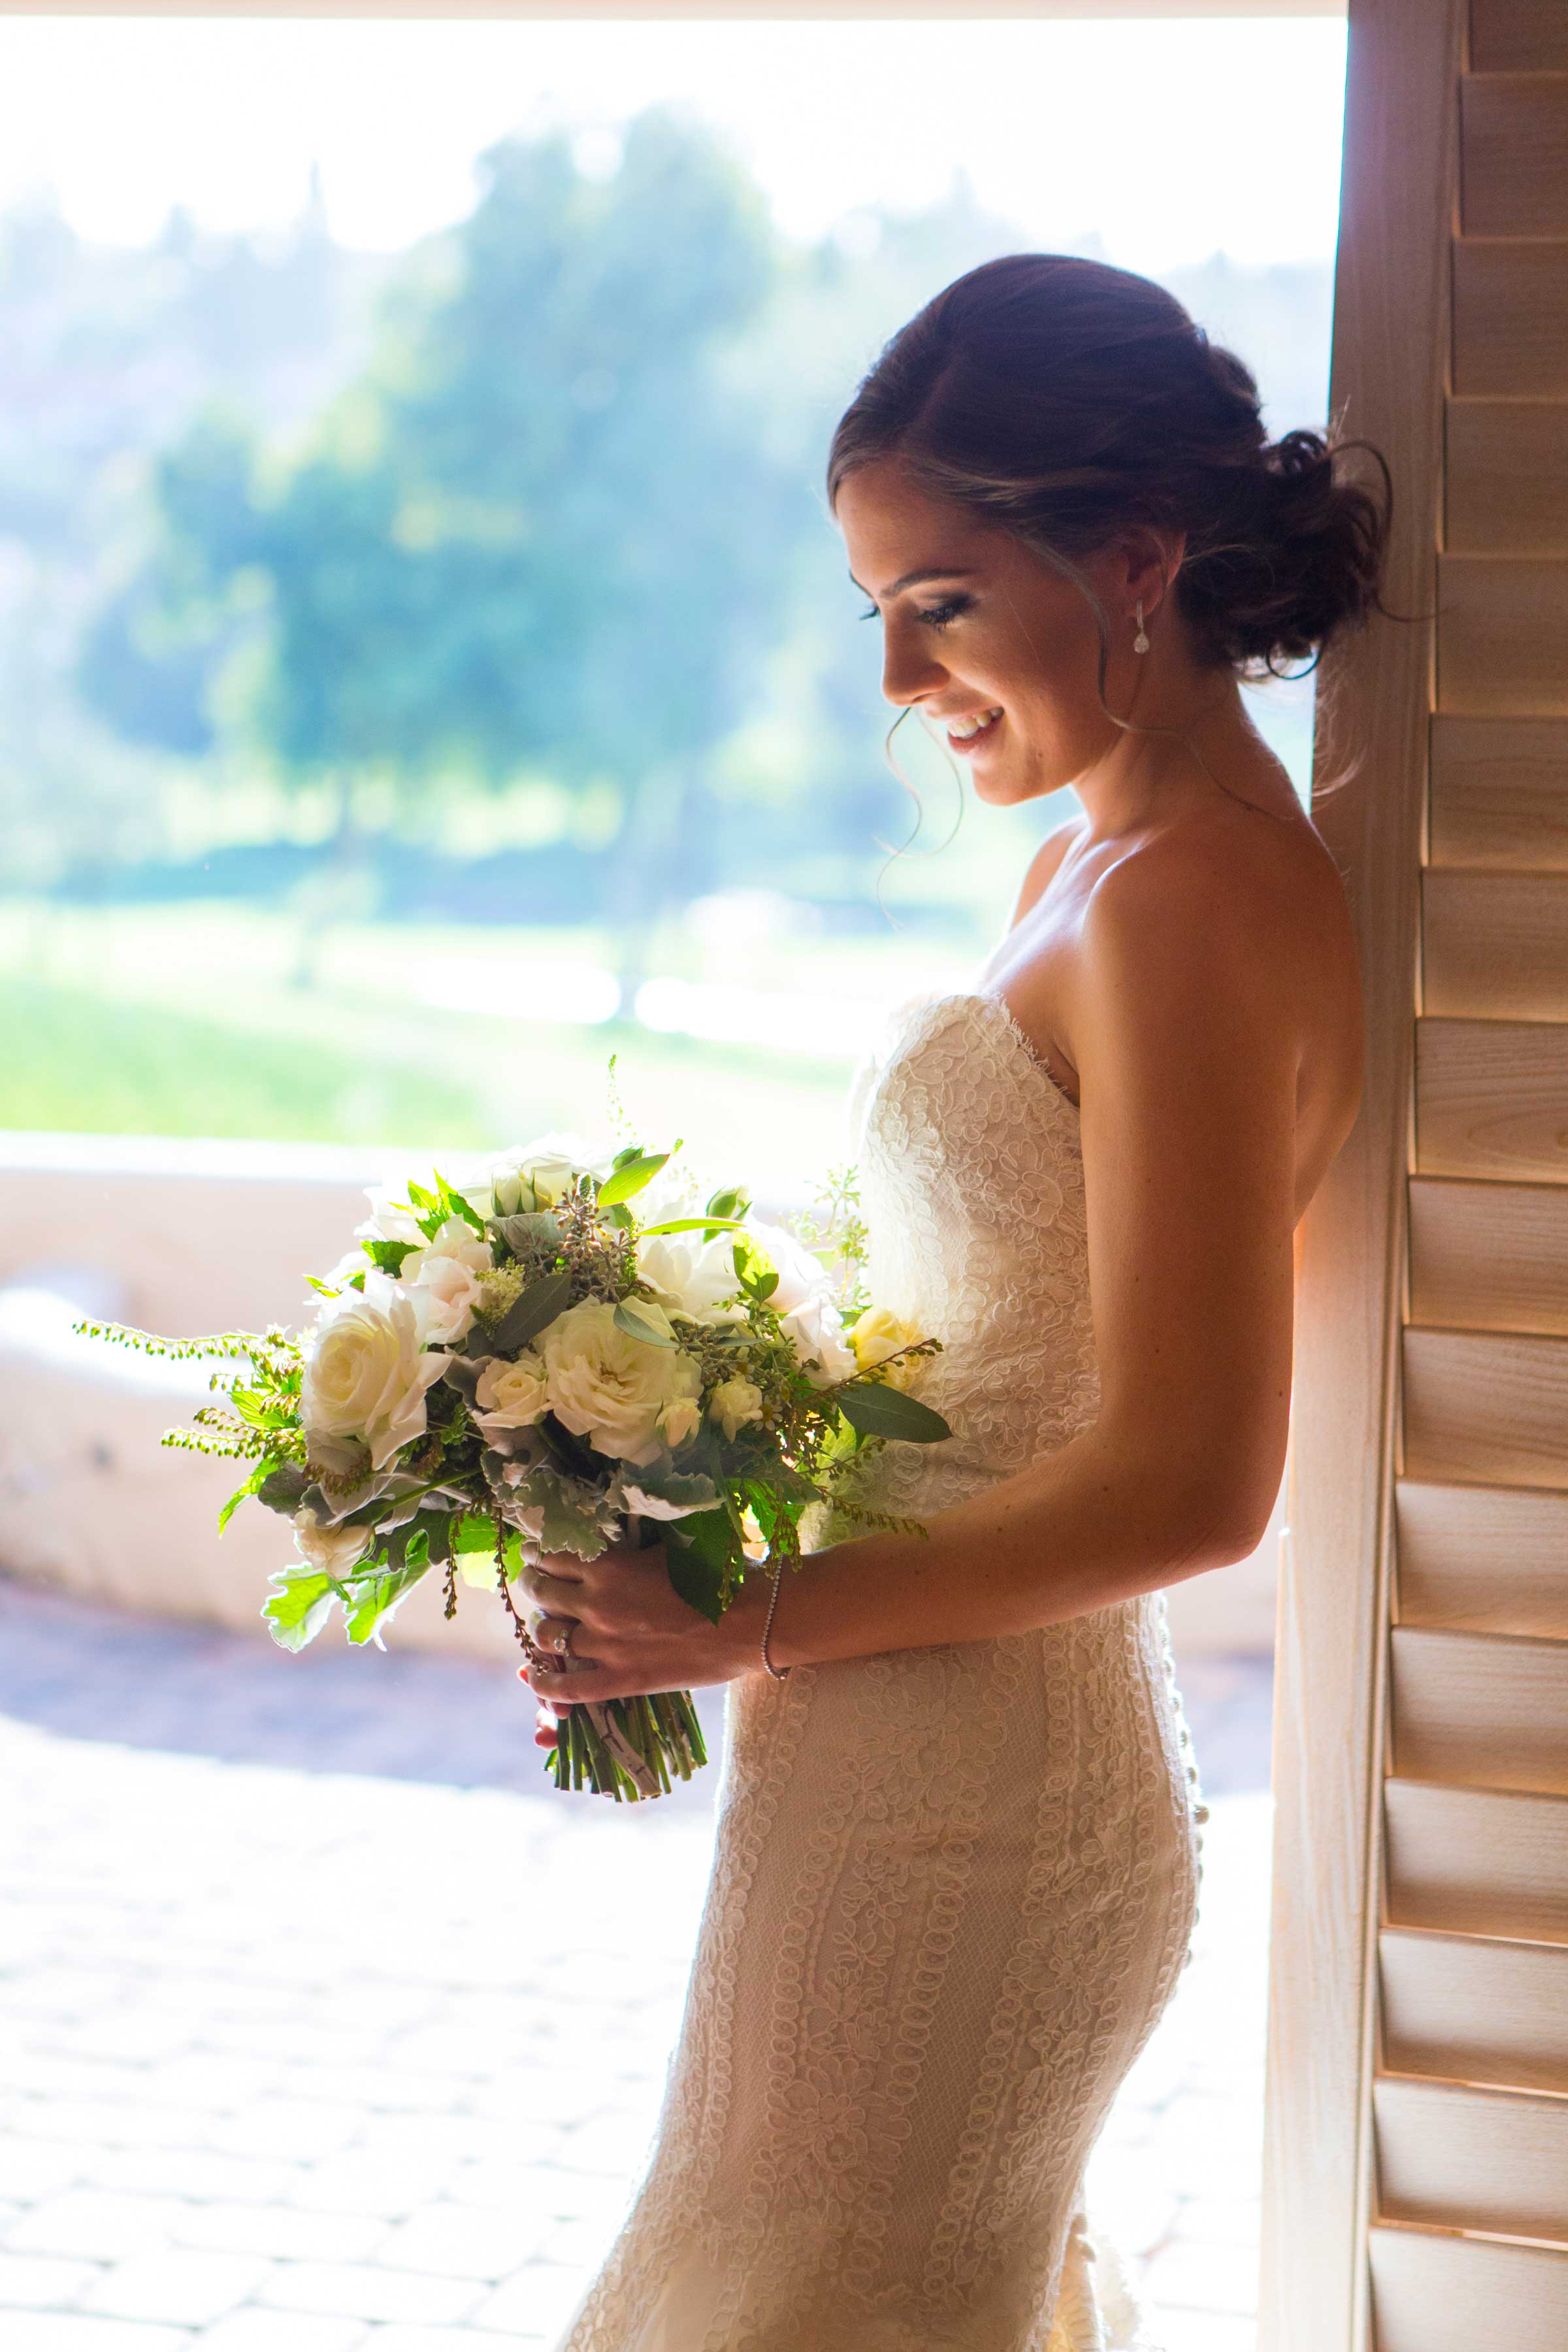 Bride holding bouquet before rustic wedding